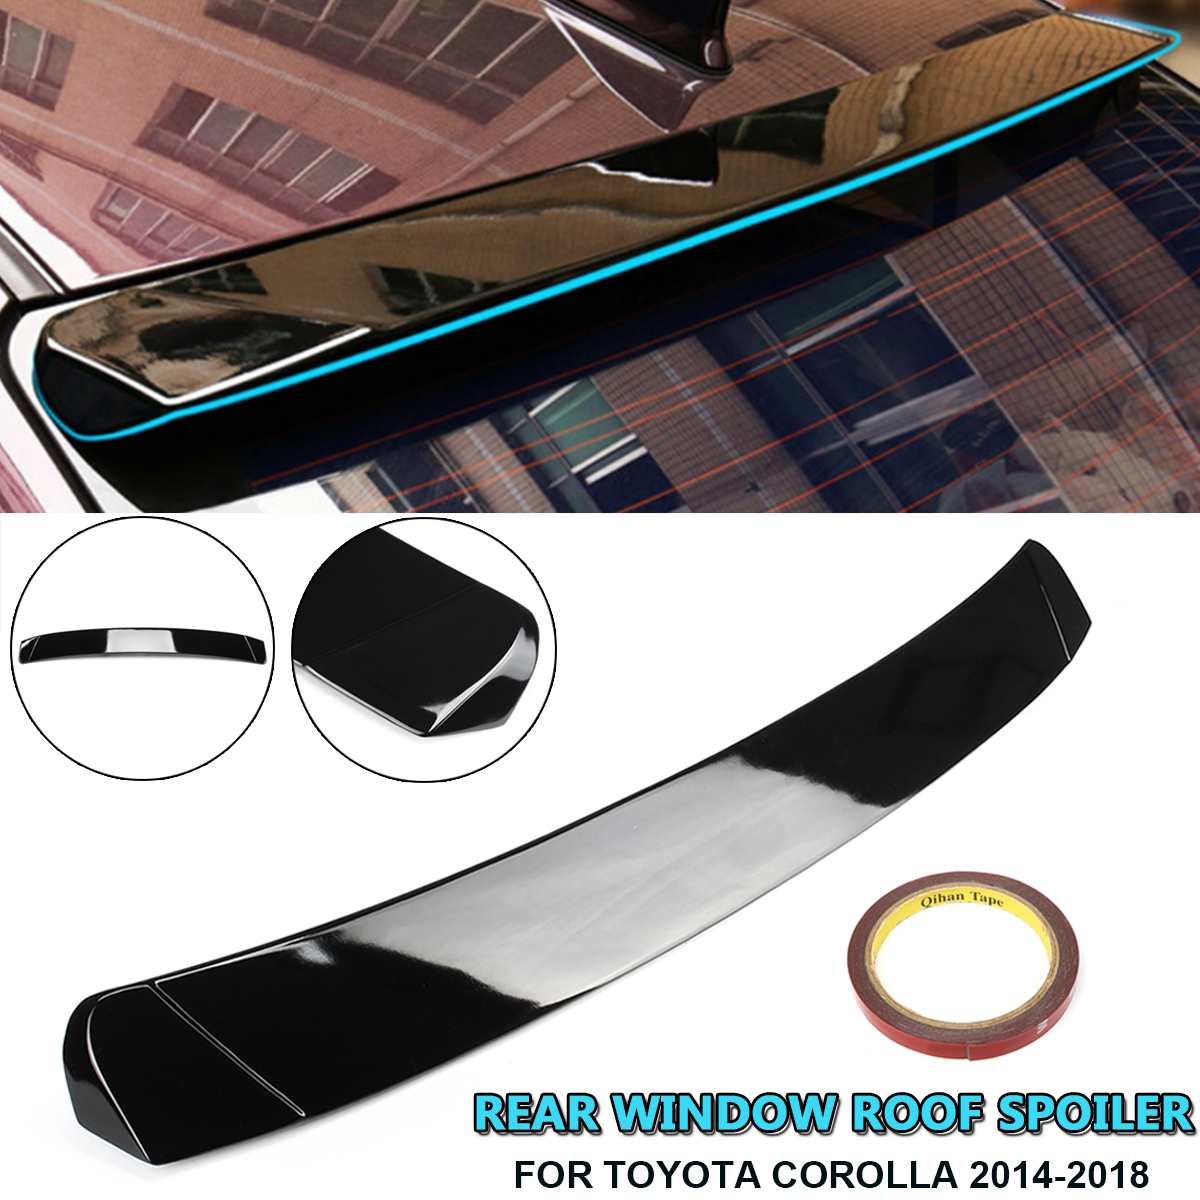 Rear Window Roof Spoiler Sun Rain Shade Vent Visor Lip For Toyota Corolla 2014 2015 2016 2017 2018Rear Window Roof Spoiler Sun Rain Shade Vent Visor Lip For Toyota Corolla 2014 2015 2016 2017 2018